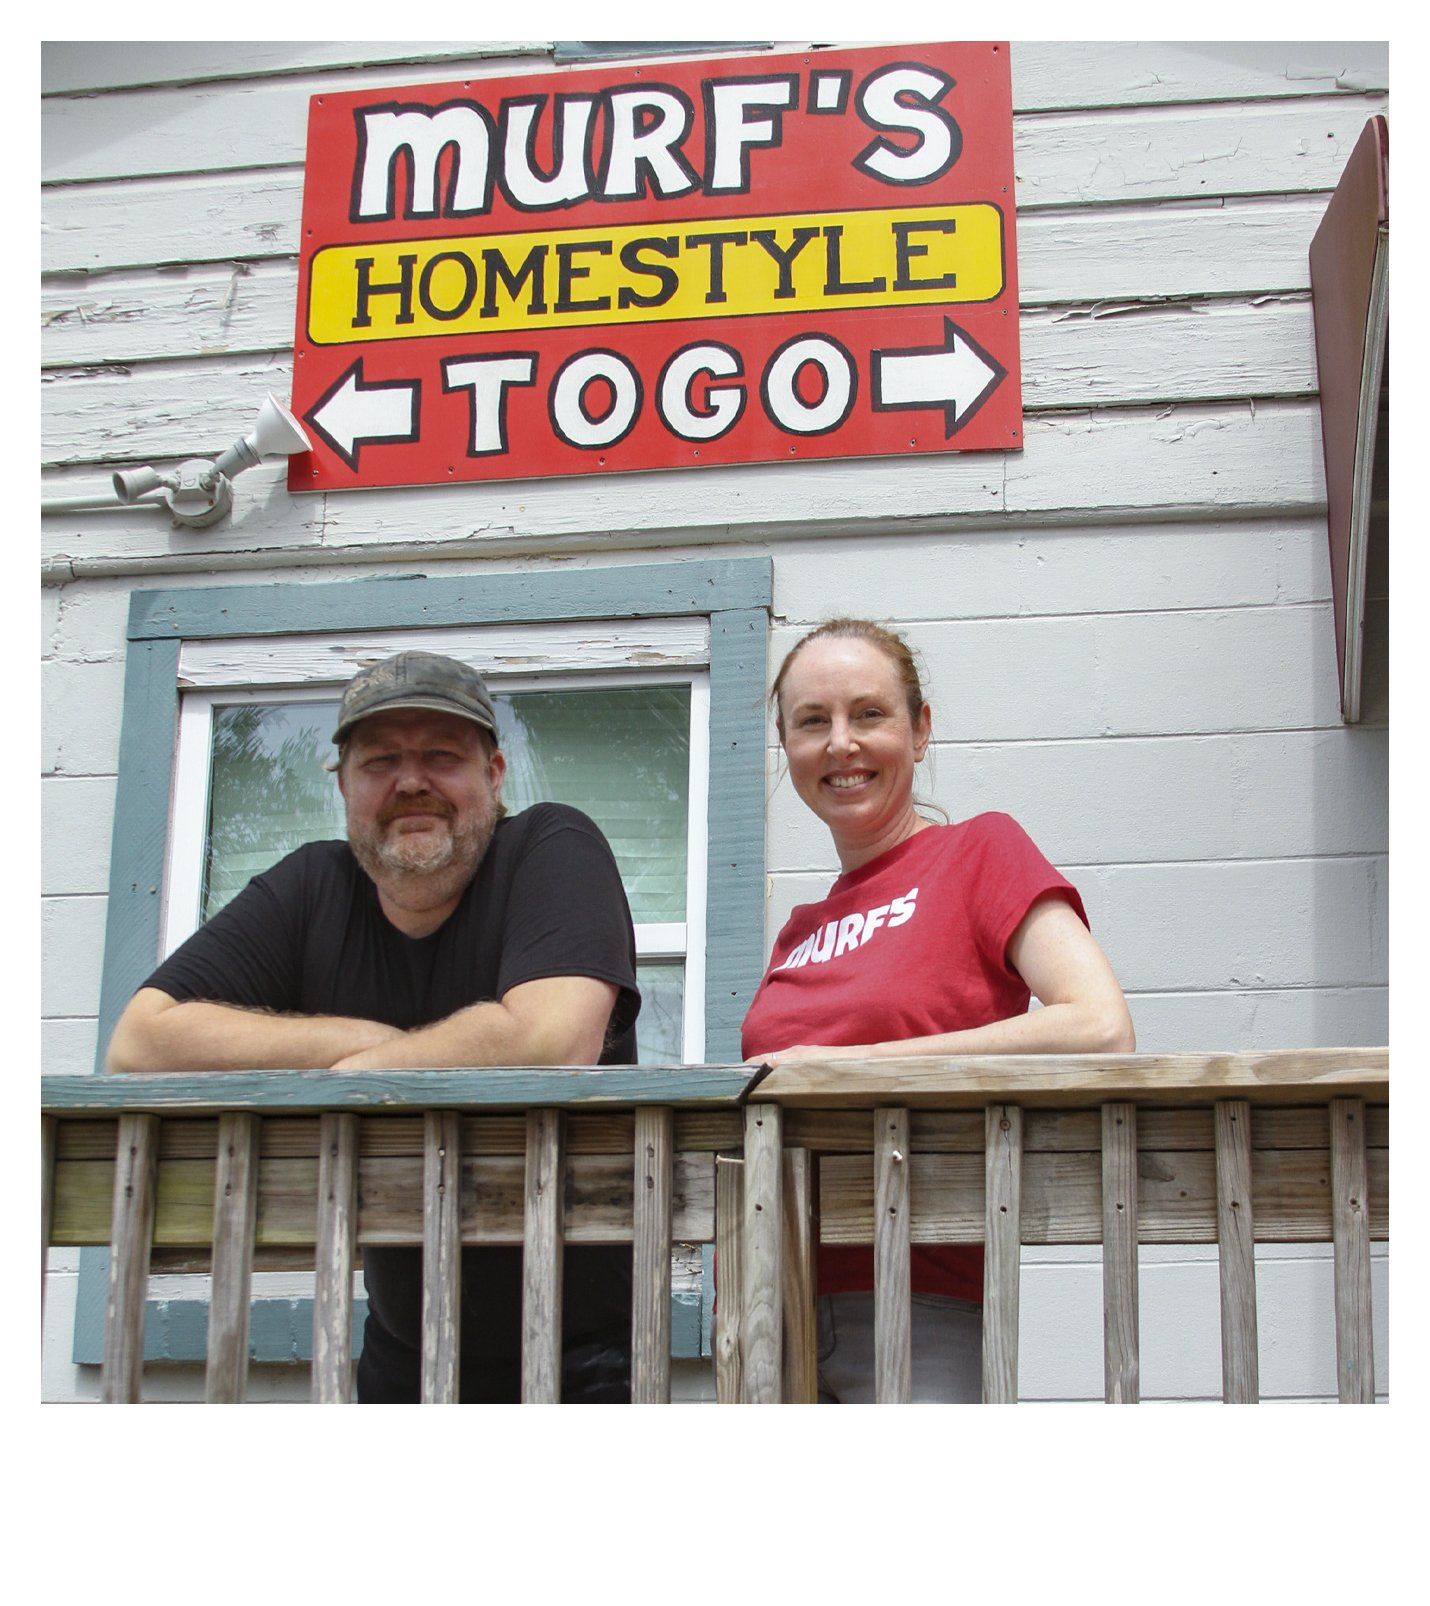 Murf and Lindsay in front of Murfs Homestyle